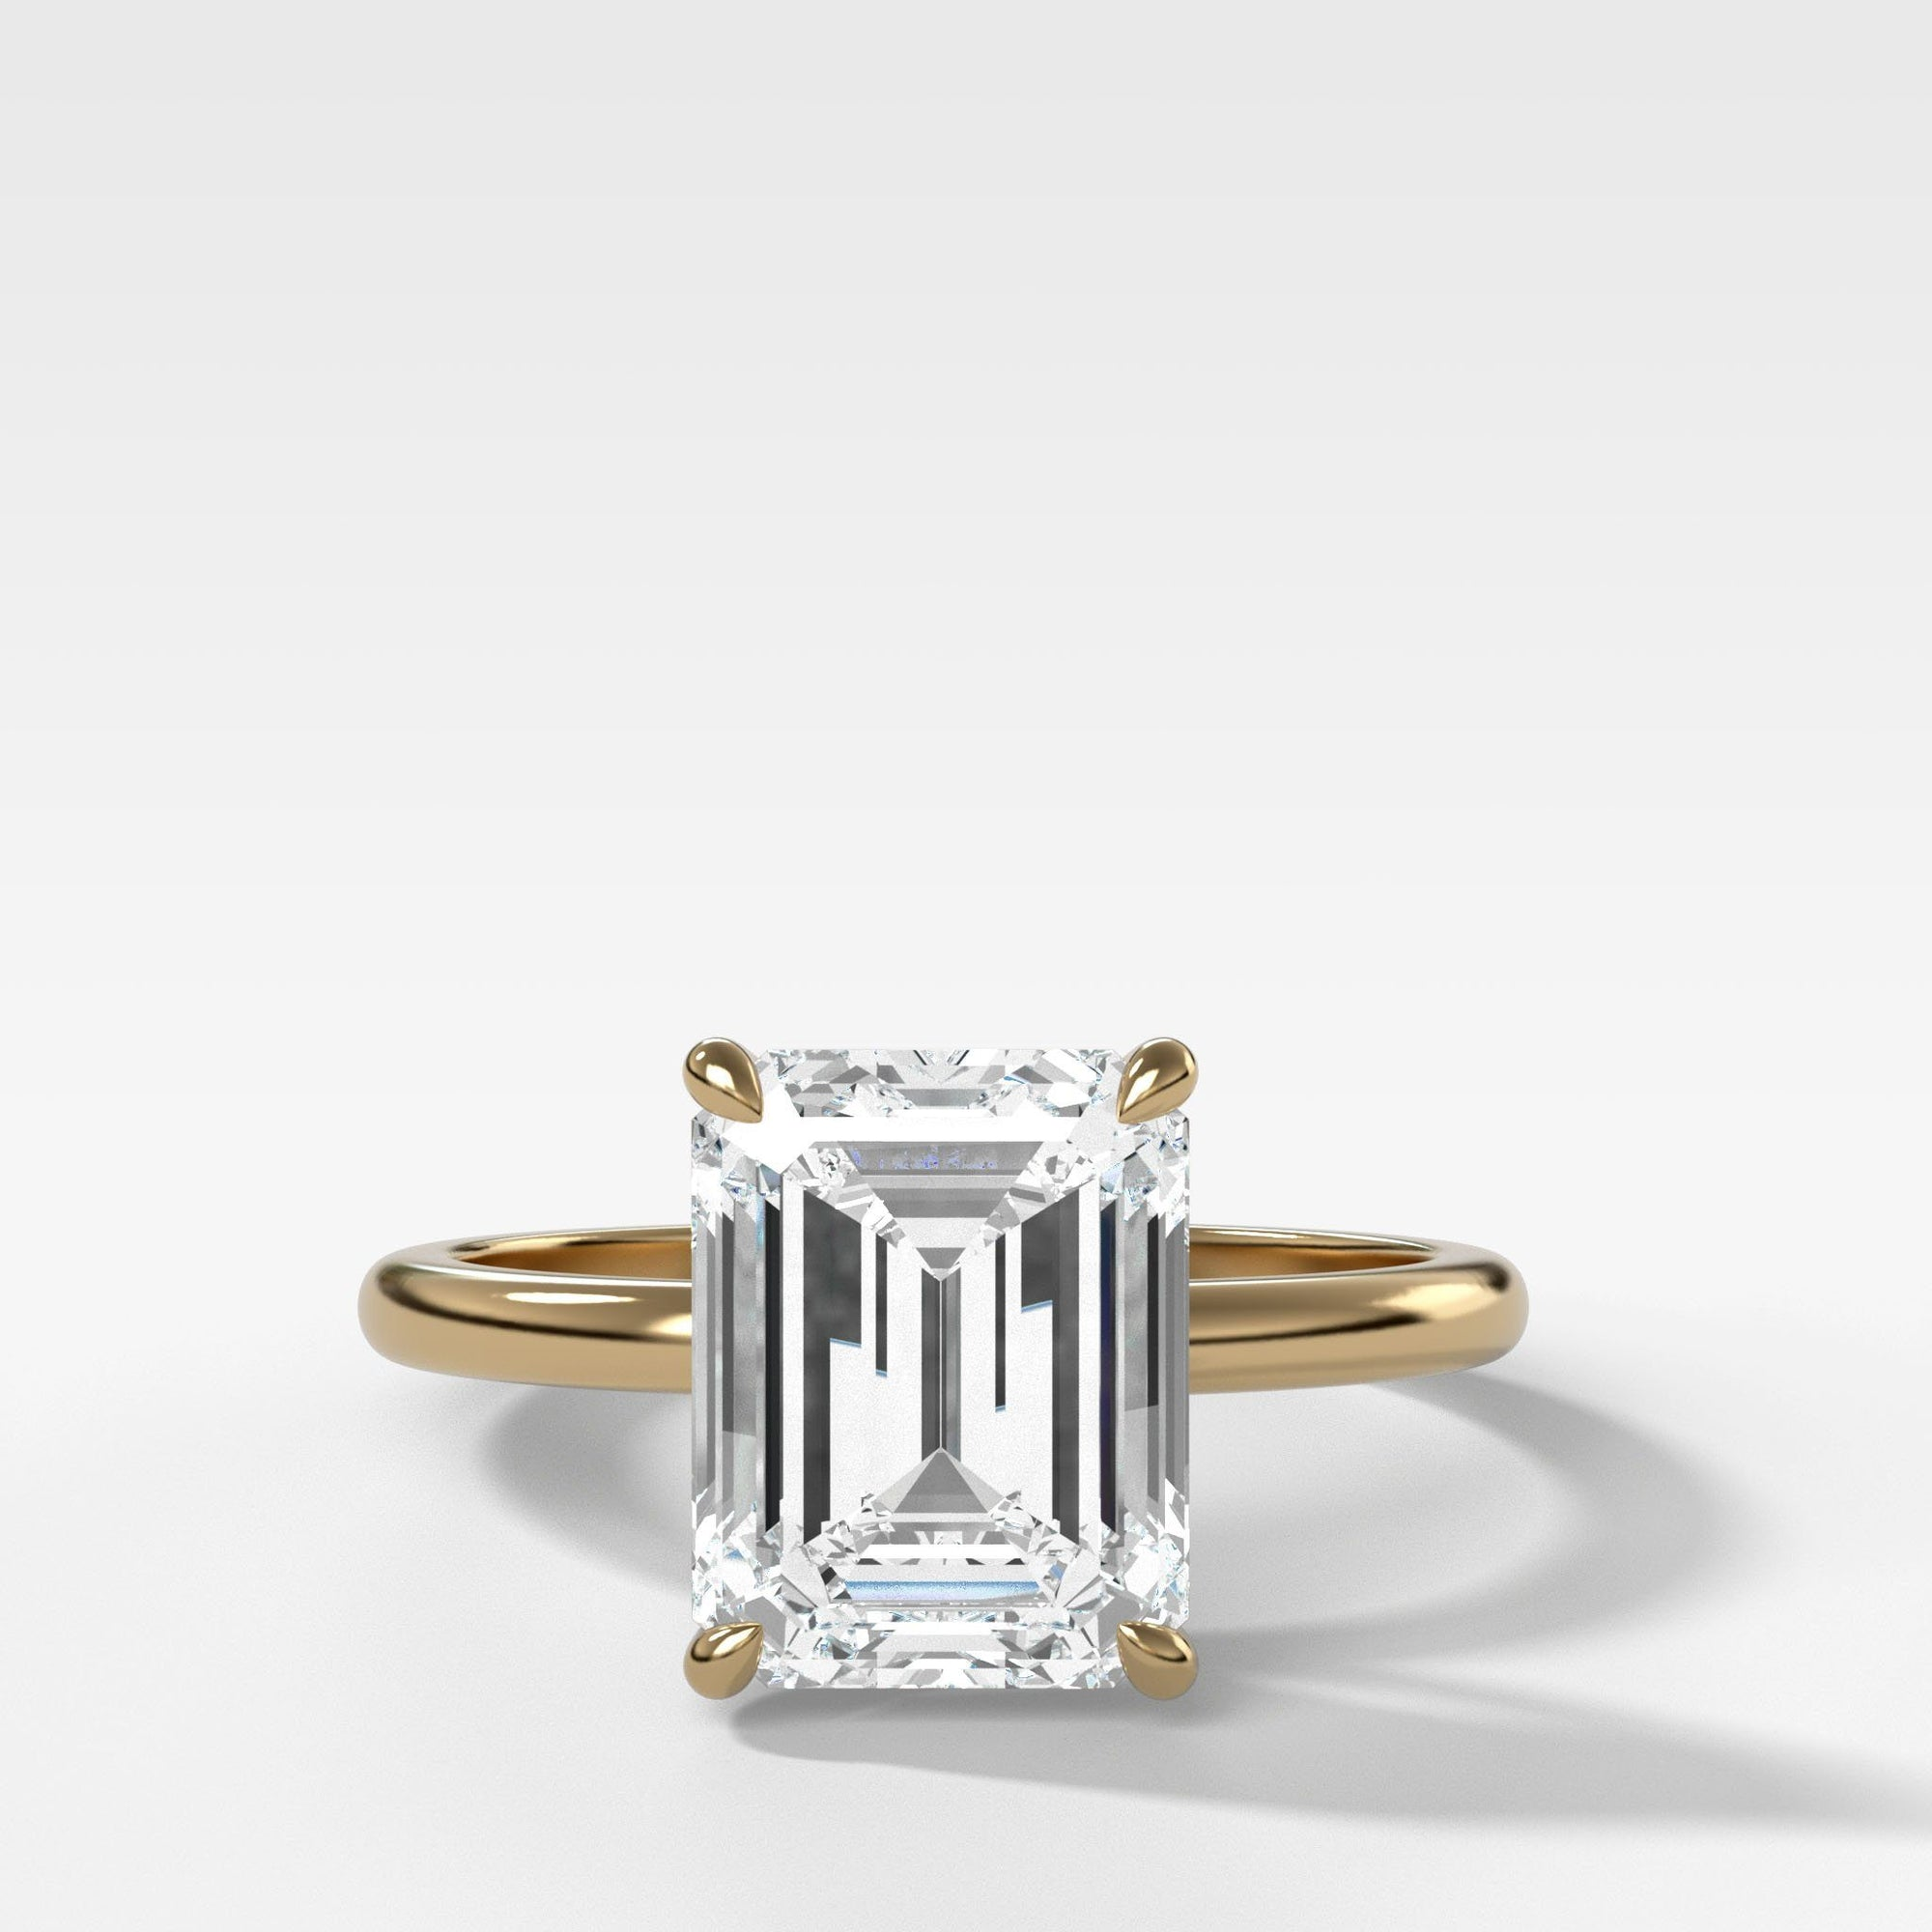 Crescent Solitaire With Emerald Cut (North South) in Yellow Gold By Good Stone